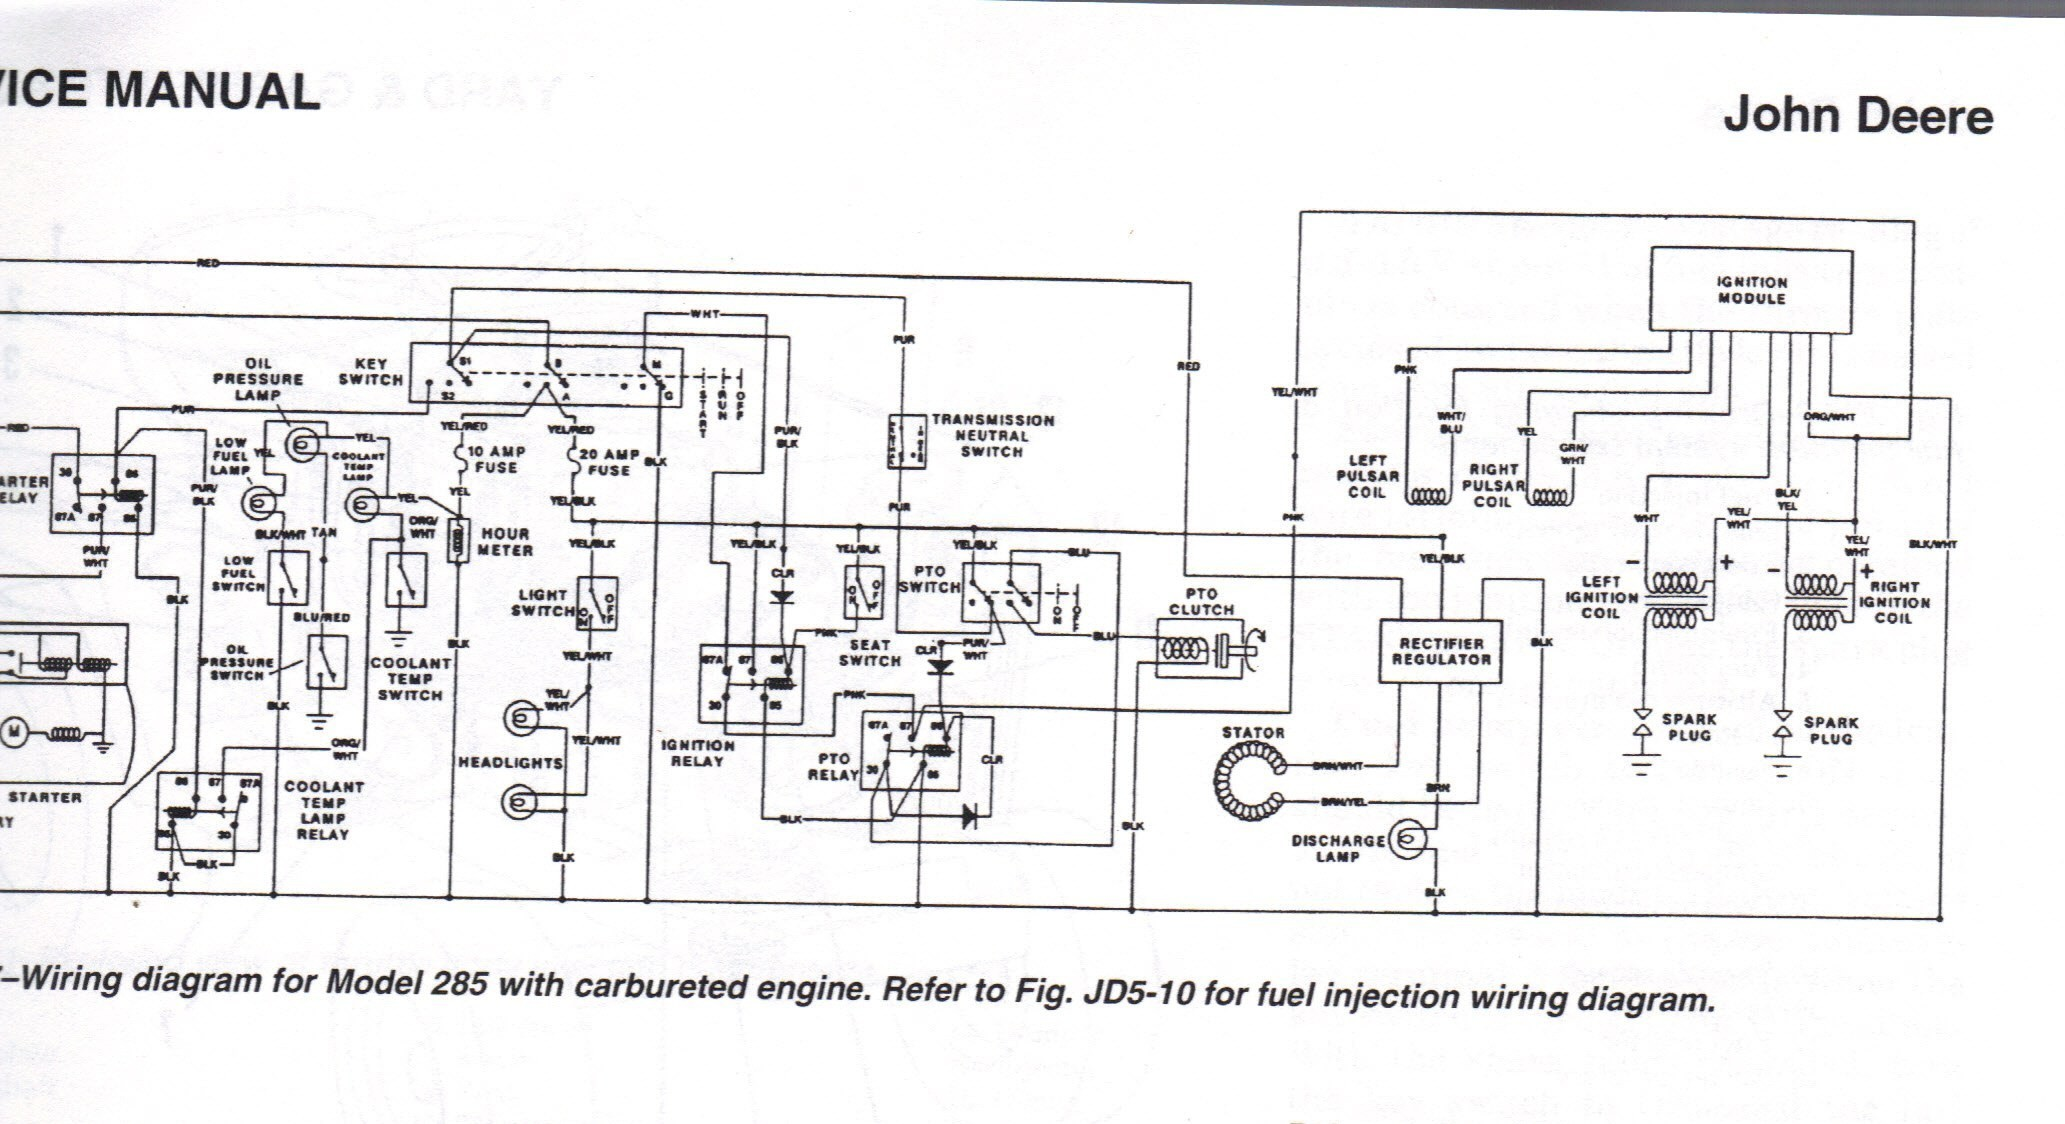 john deere 318 garden tractor wiring diagram fresh within or 316